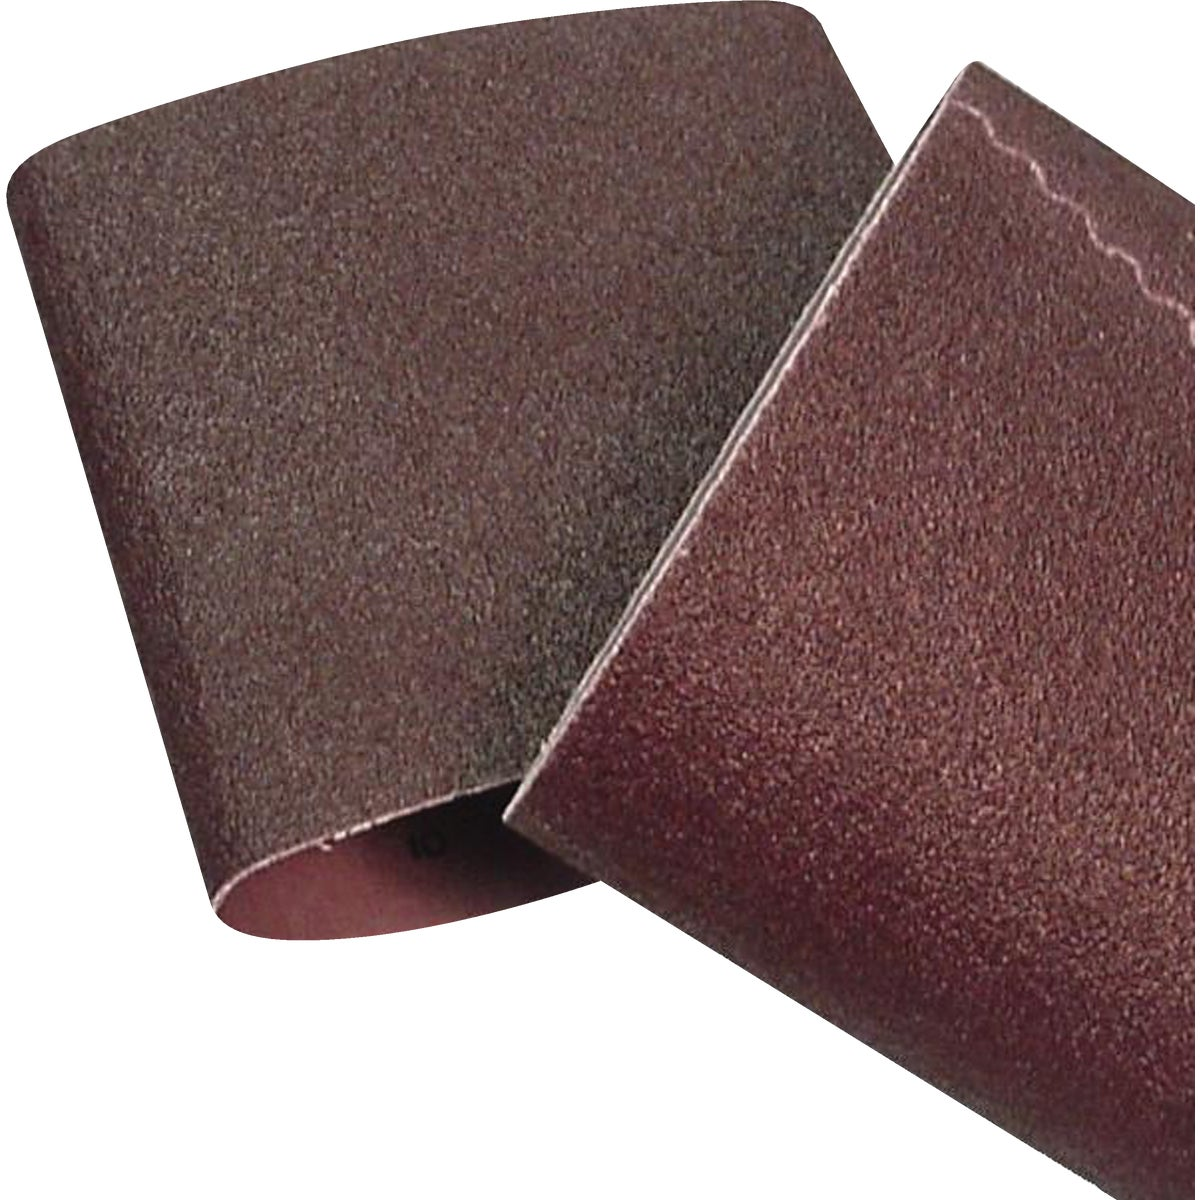 100G FLOOR SANDING BELT - 018-881994 by Virginia Abrasives